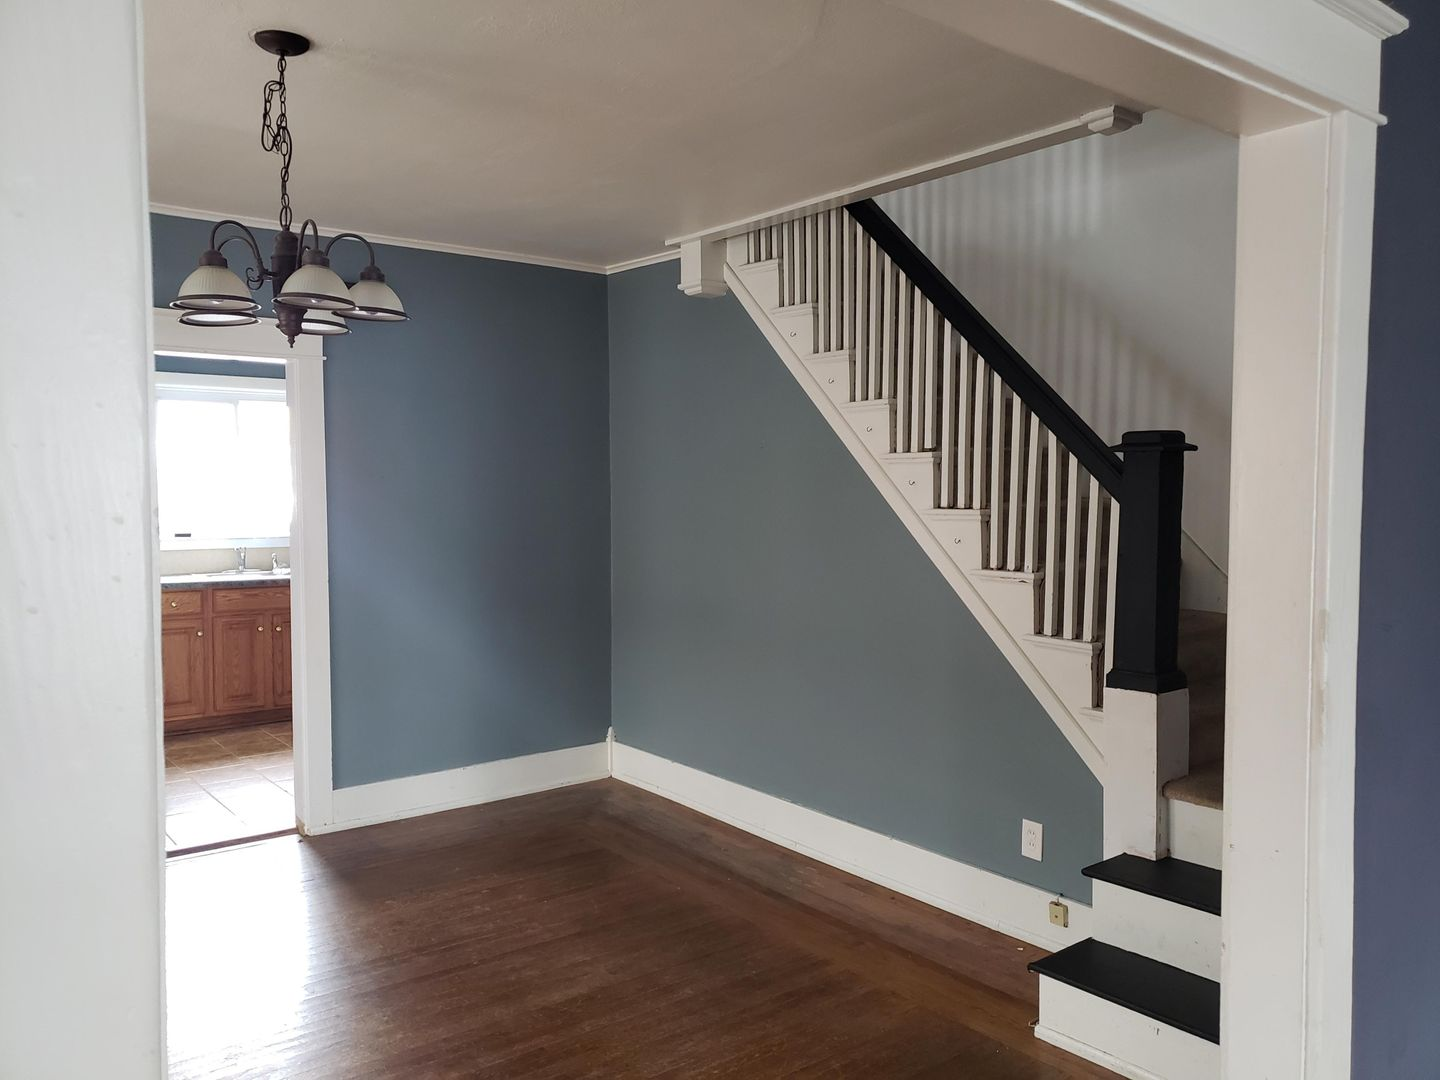 407 S 17th St Allentown Pa 18104 Rental Listing Real